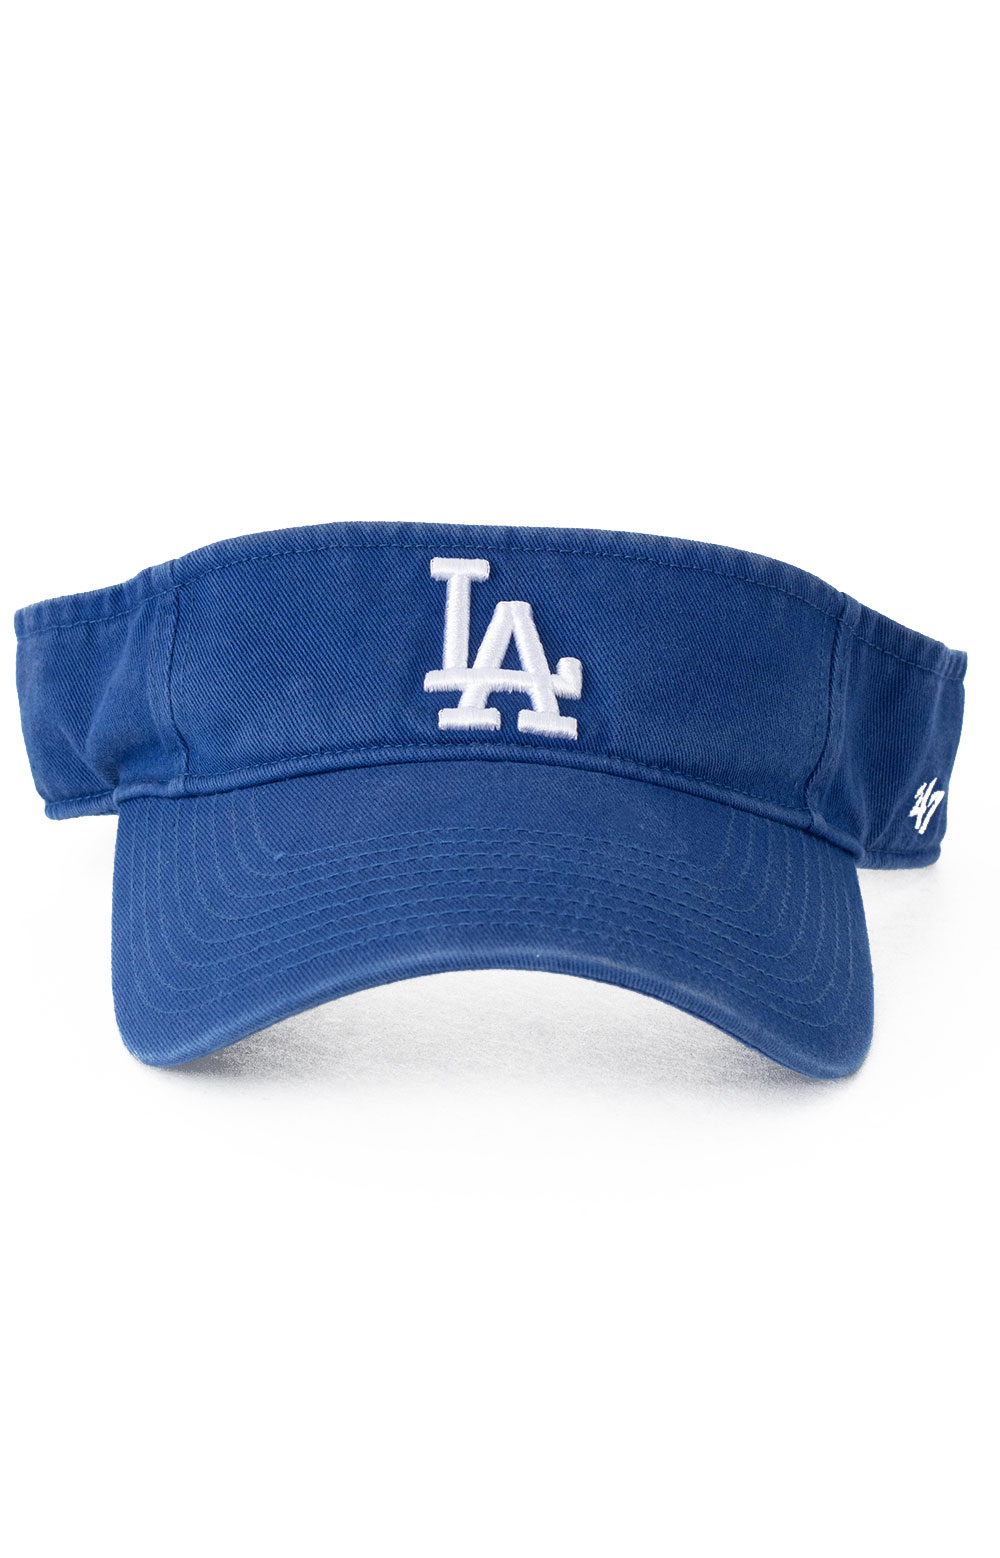 LA Dodgers 47 Clean Up Visor - Royal Blue 2